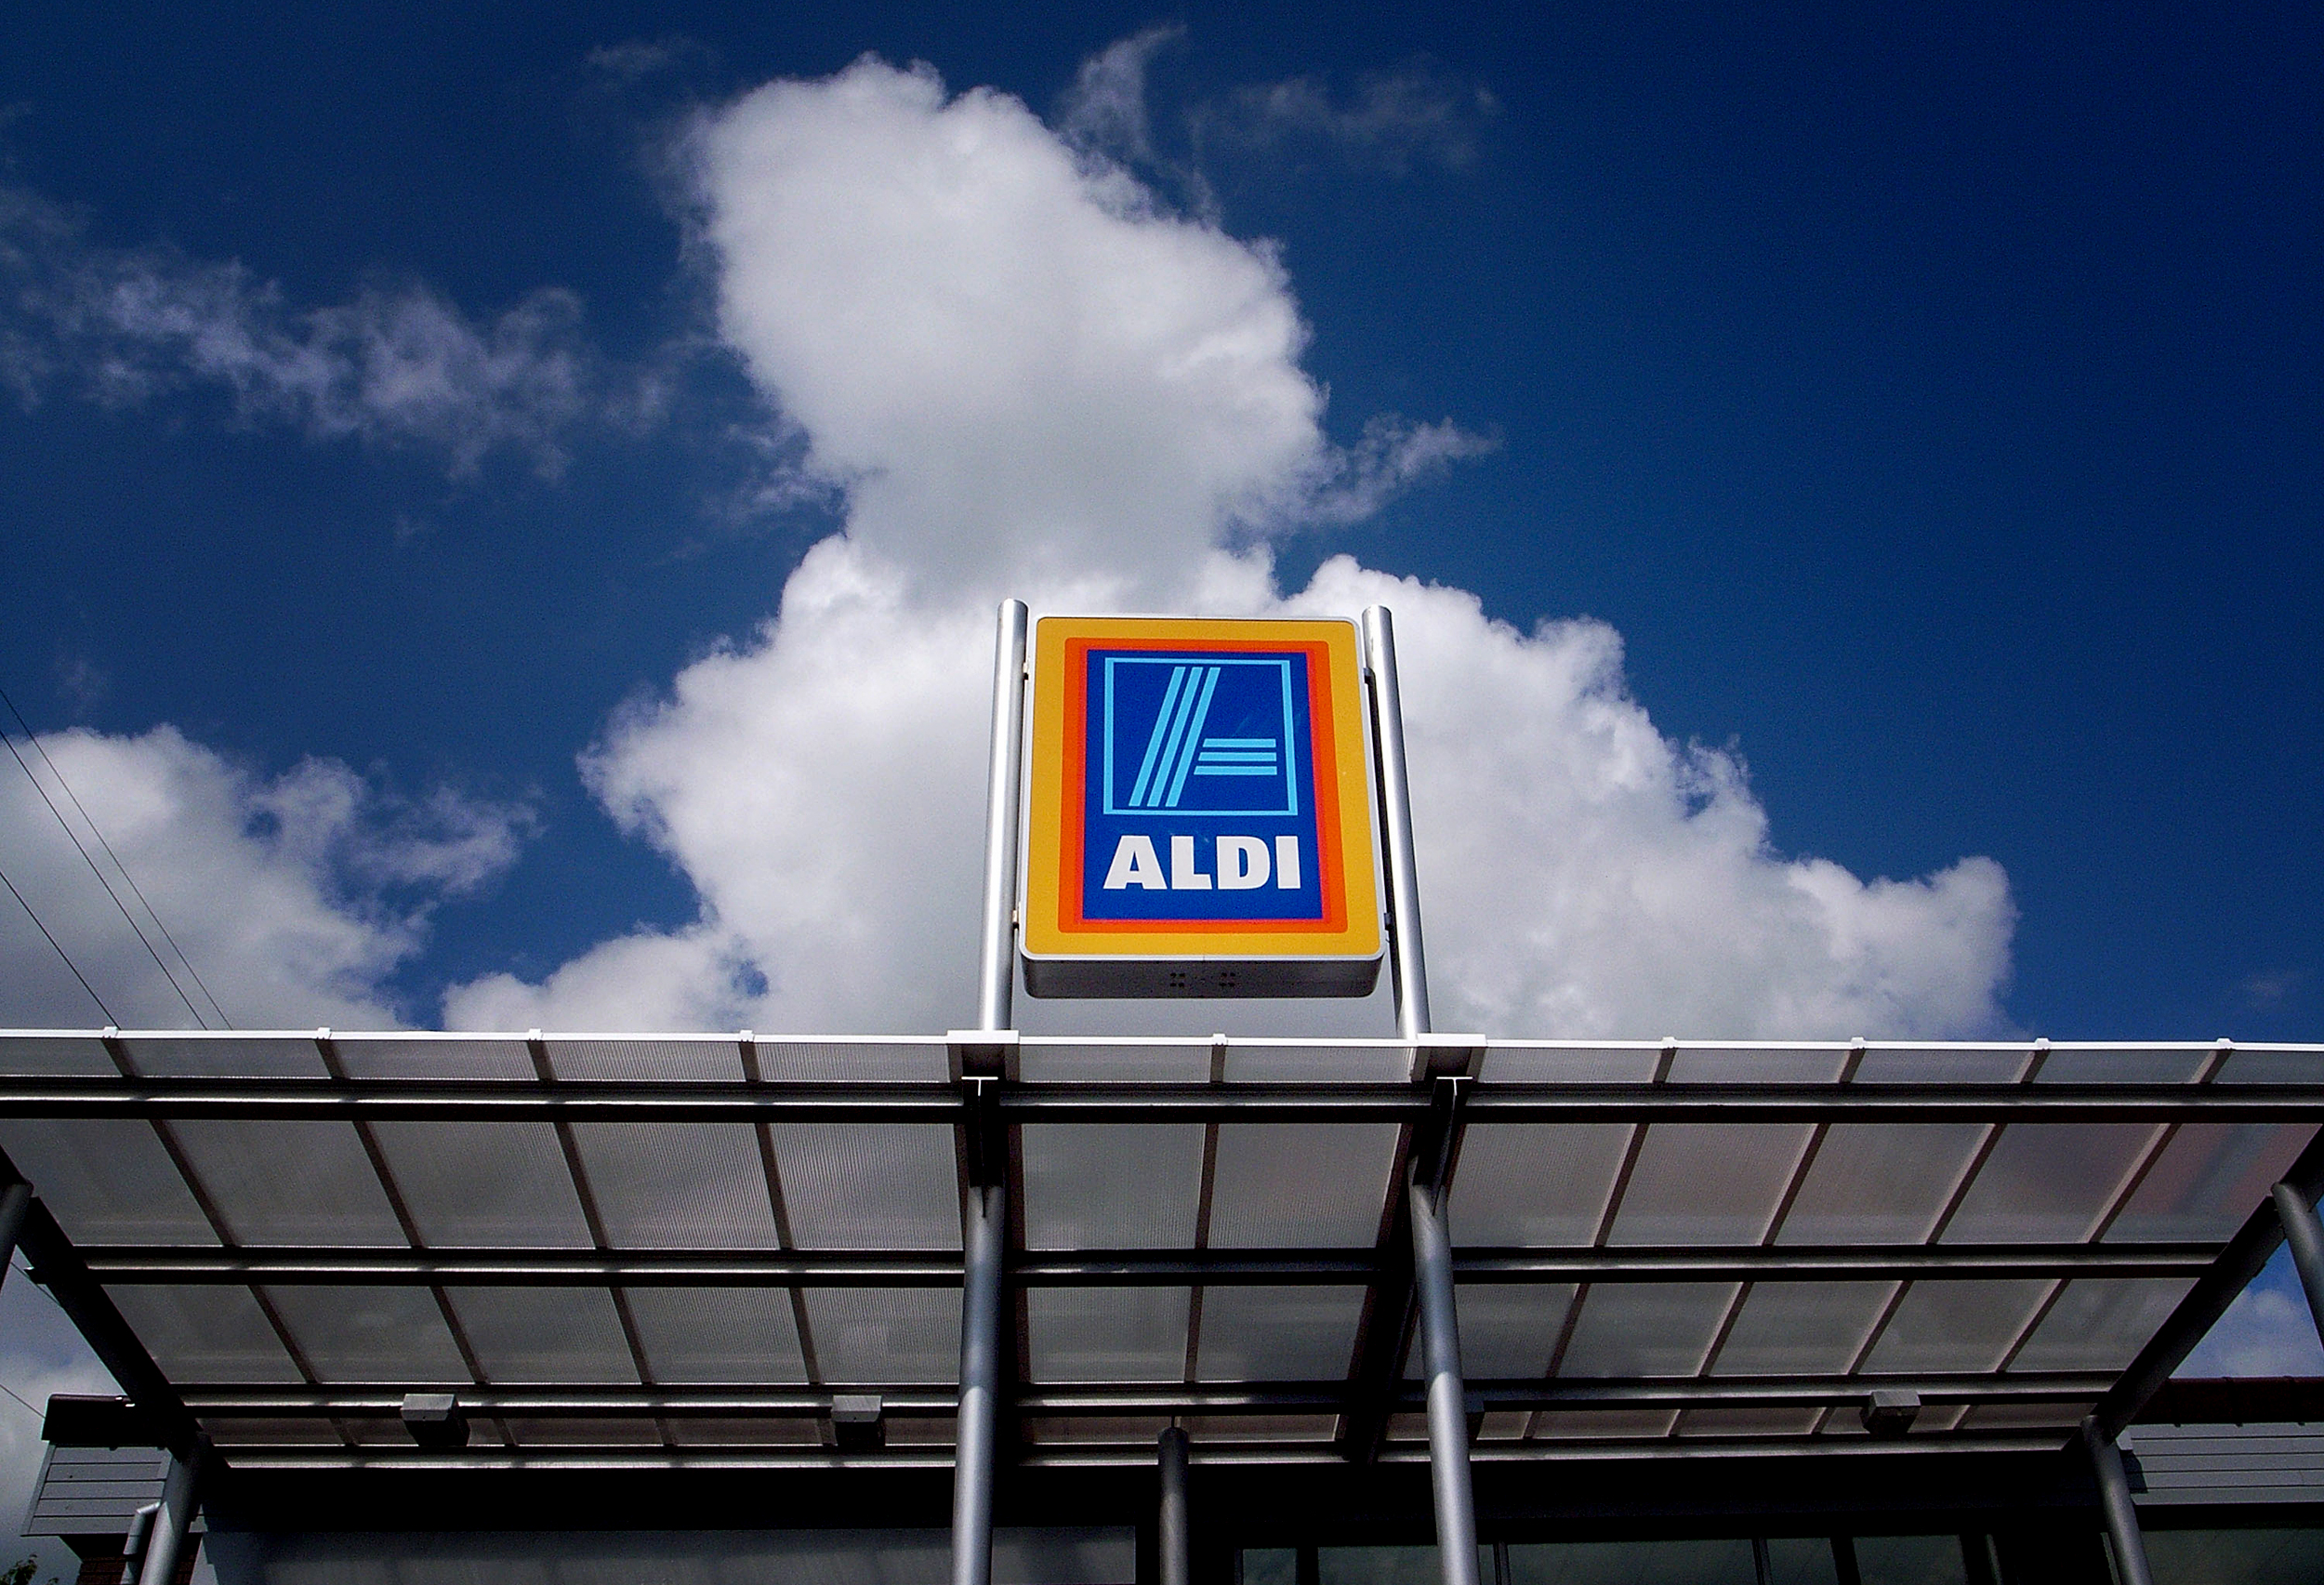 Everyone S Raving About Aldi So I Switched For A Week Here S What